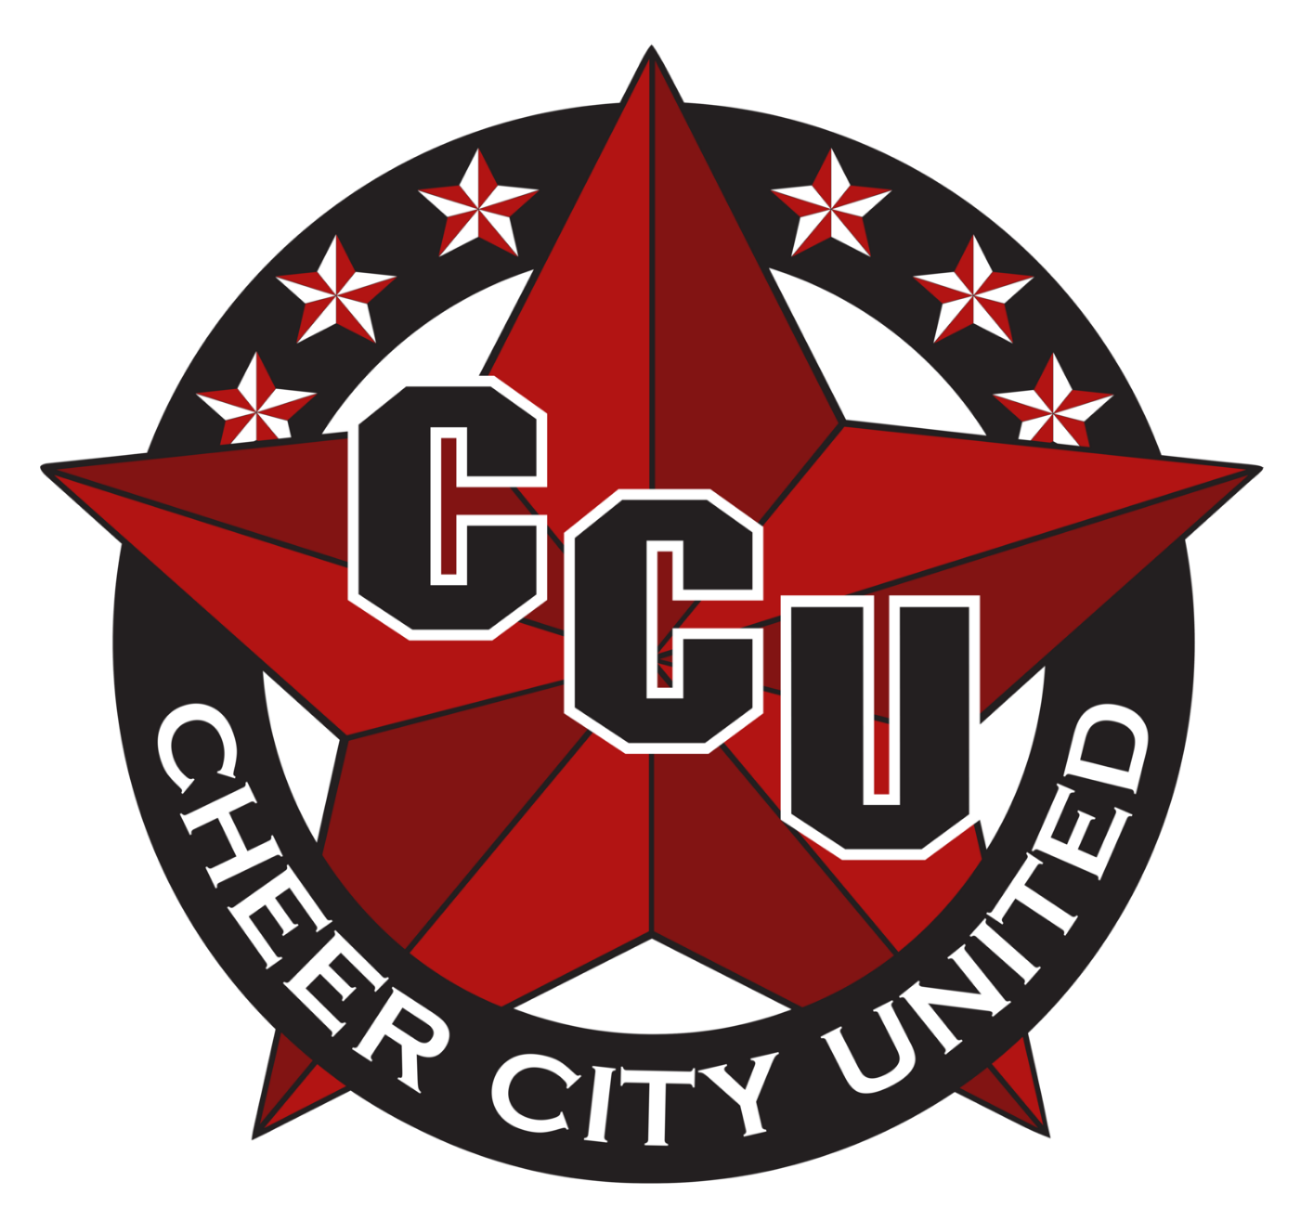 Cheer City United